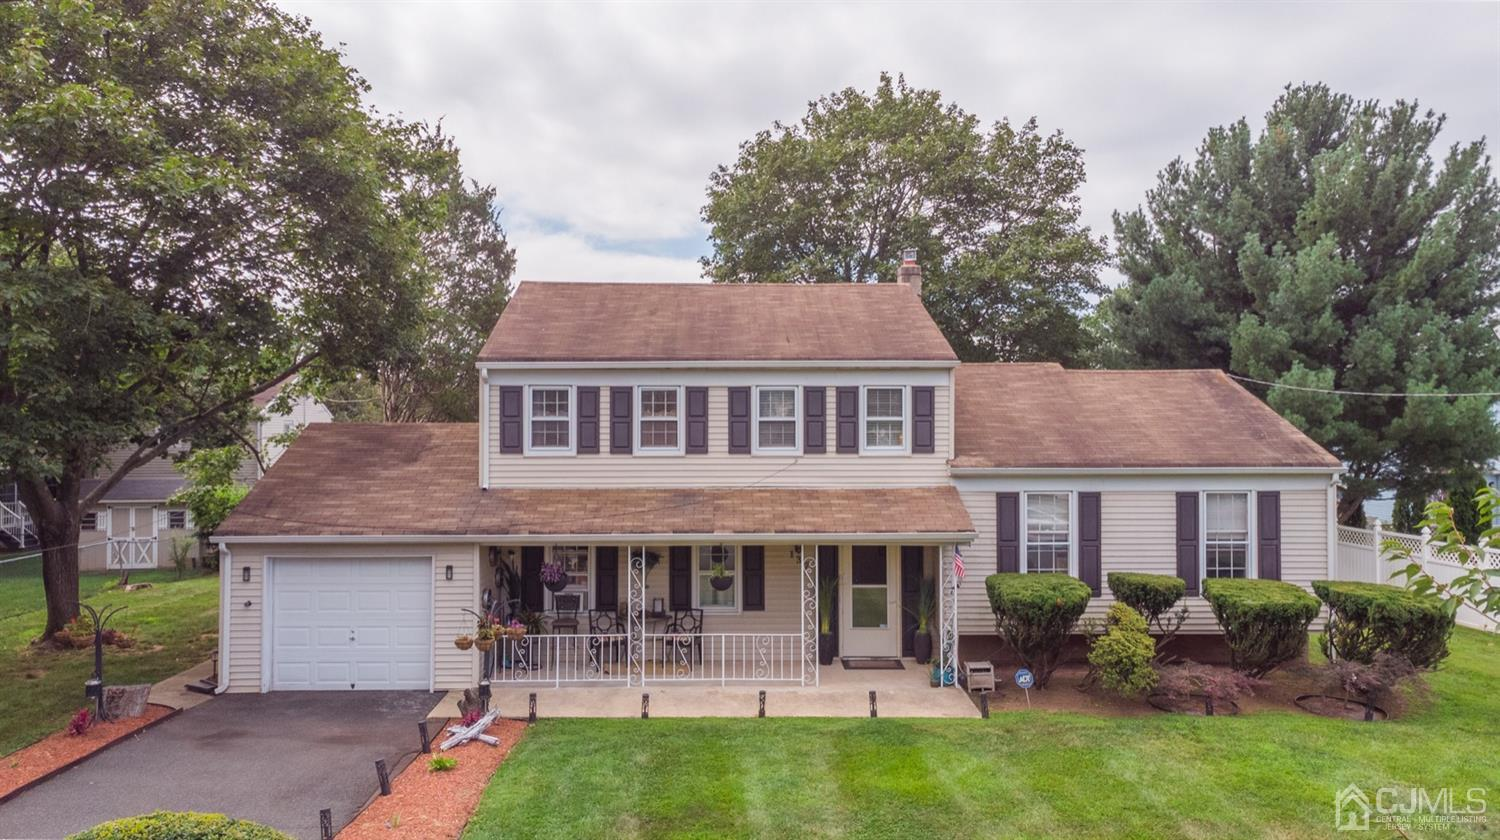 Well Appointed North Facing, 3/4 Bedroom, 2 Bath Custom Split-Level. Incredible location and desirable neighborhood close to Rutgers, schools, major highways, mass transportation, houses of worship & cultural centers, malls & shopping, parks & recreation & much more! Don't Miss-Won't Last!